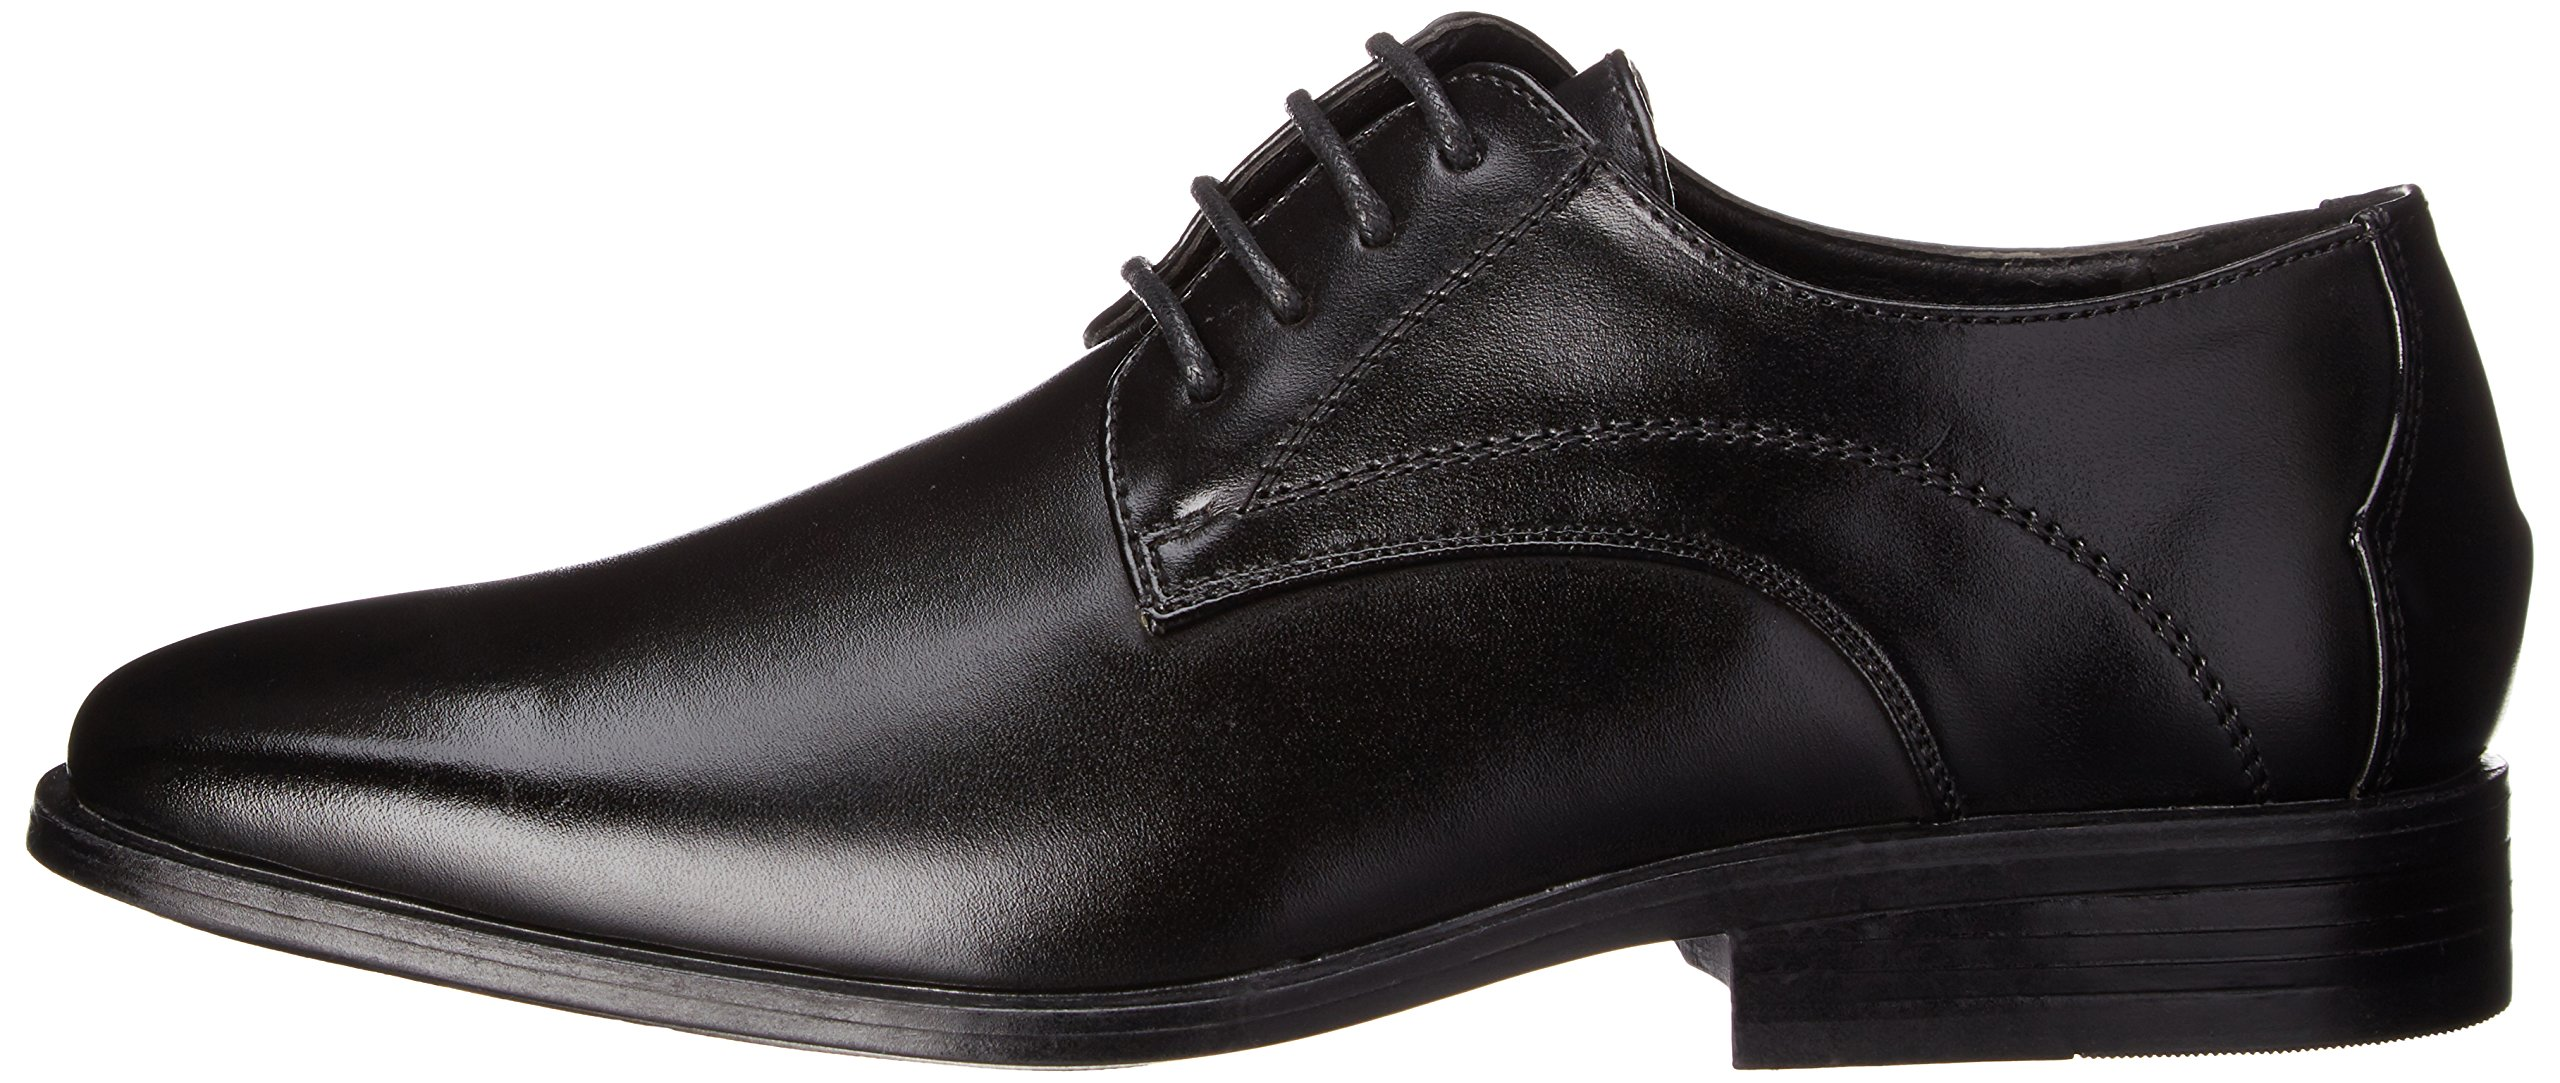 Stacy Adams Carmichael Plain Toe Lace-up Uniform Oxford Dress Shoe (Little Kid/Big Kid),Black,4 M US Big Kid by STACY ADAMS (Image #5)